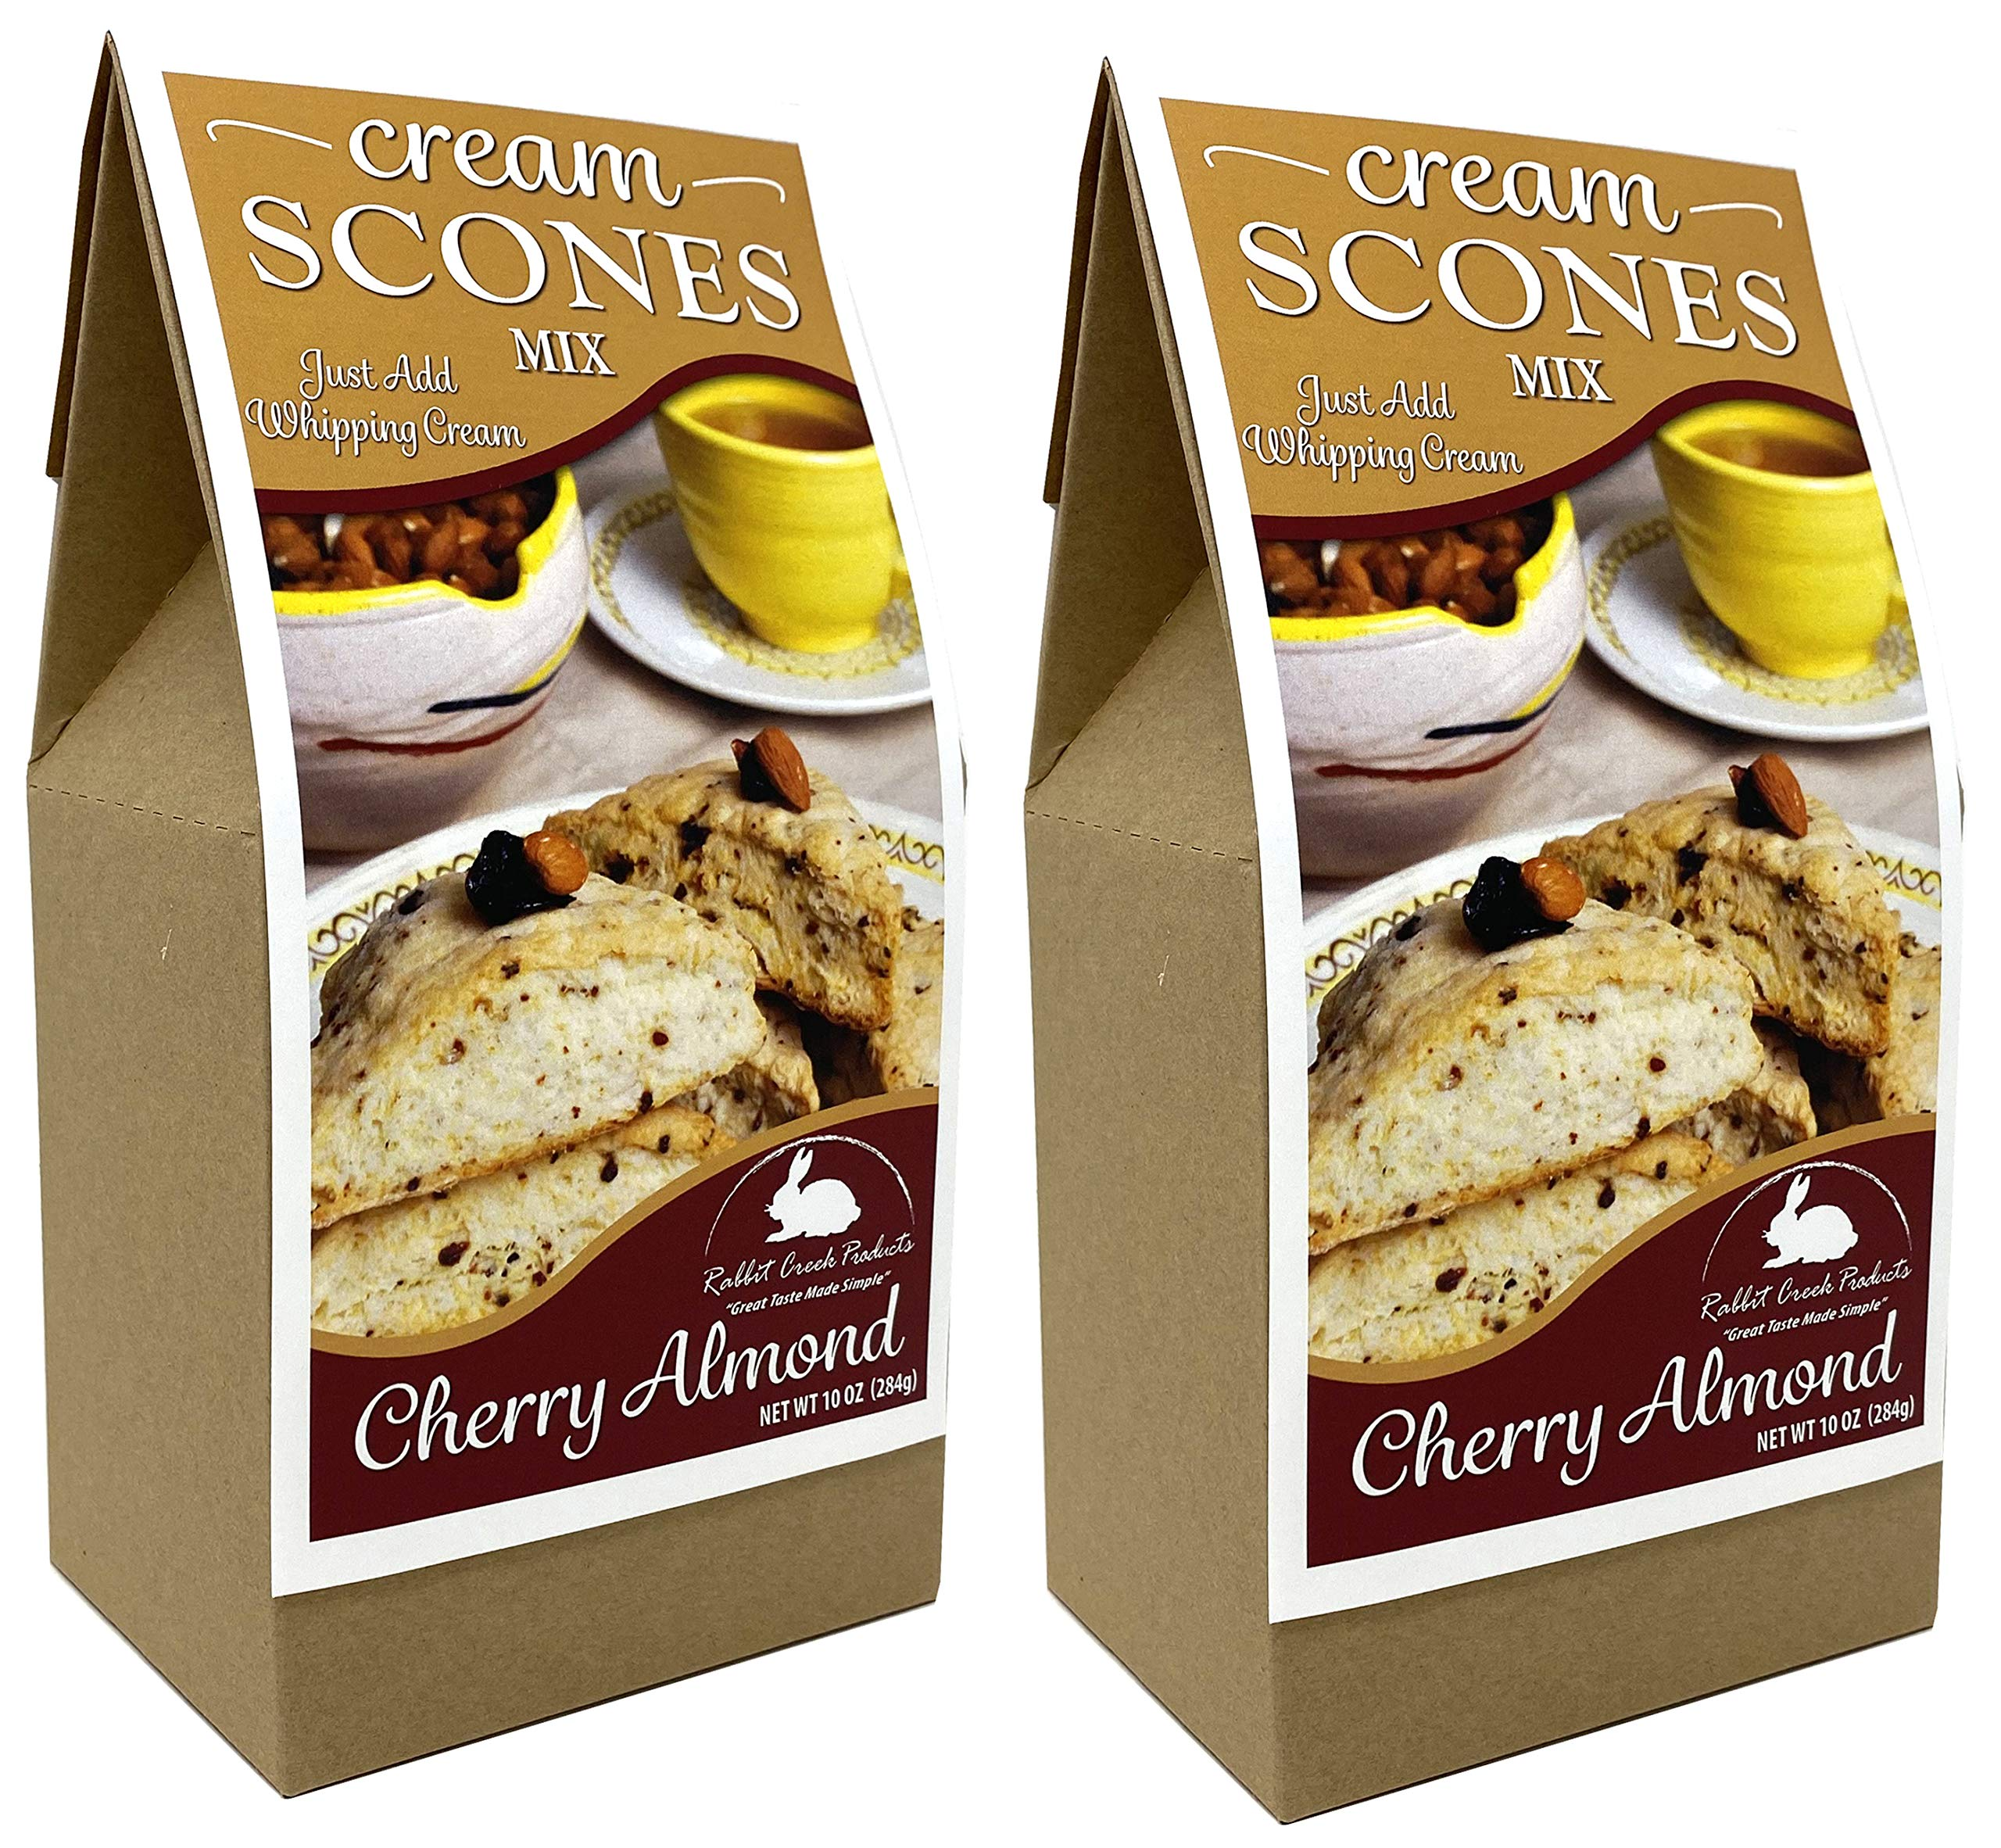 Rabbit Creek Cherry Almond Scones Pack of 2 - Easy Gourmet Scone Baking Mix - Made in the USA